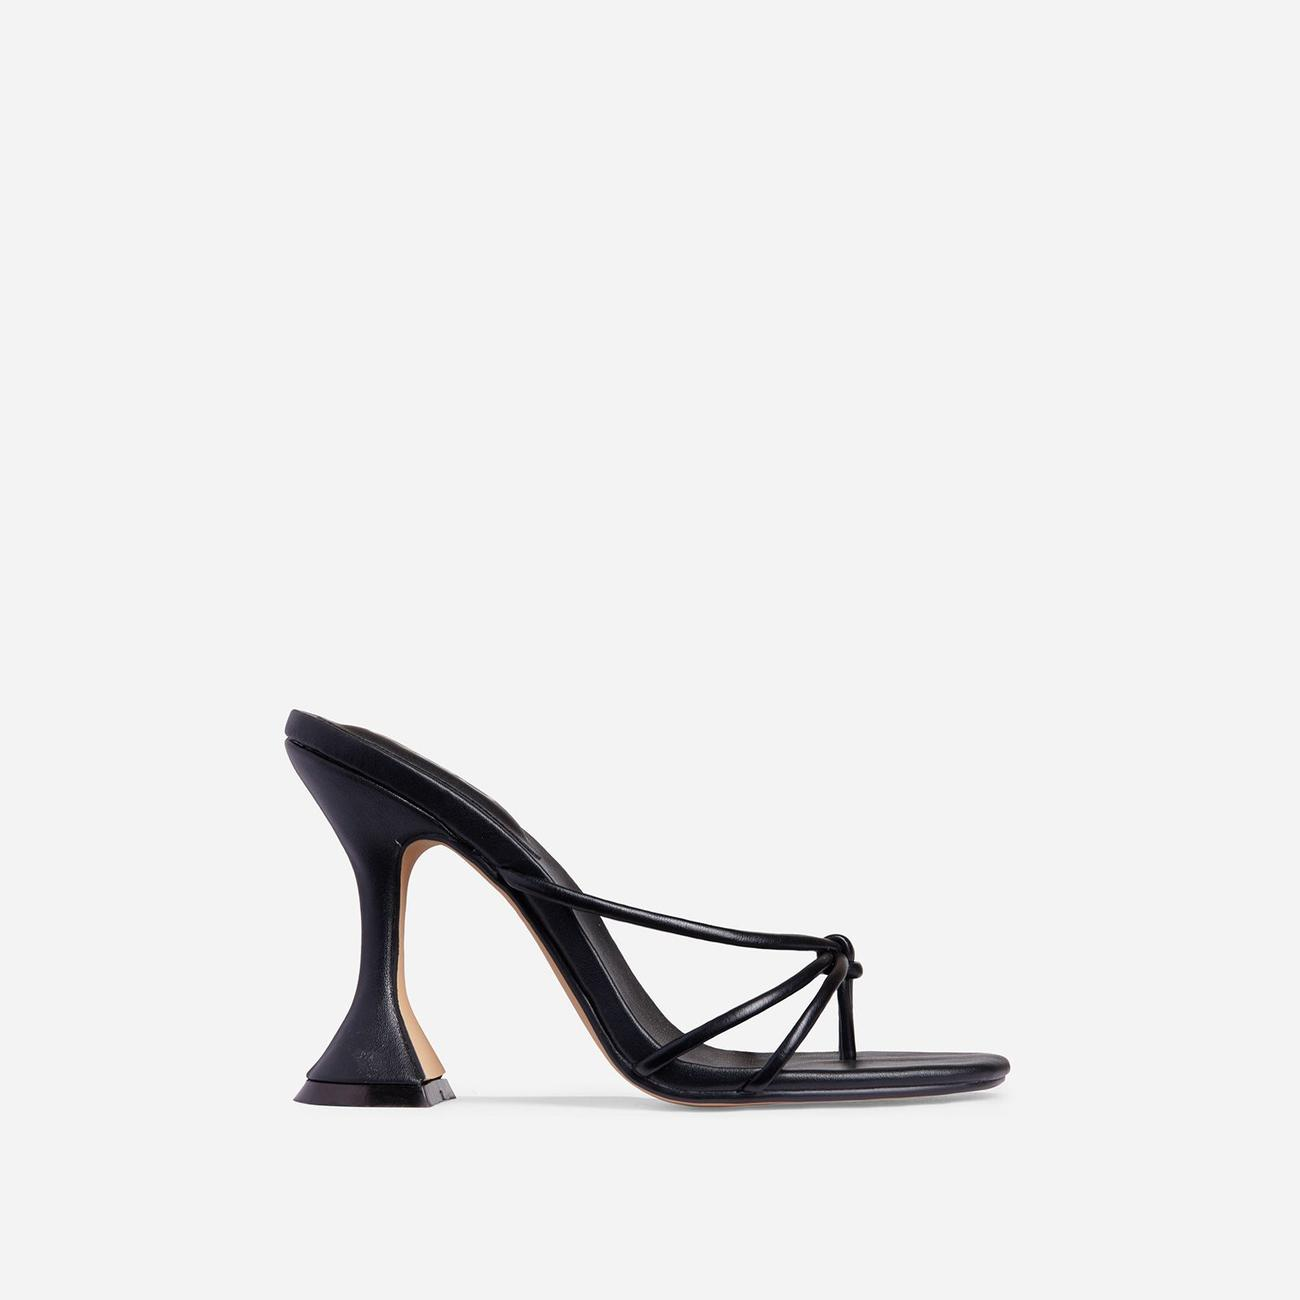 Trip Knot Detail Square Toe Pyramid Heel Mule In Black Faux Leather Image 1